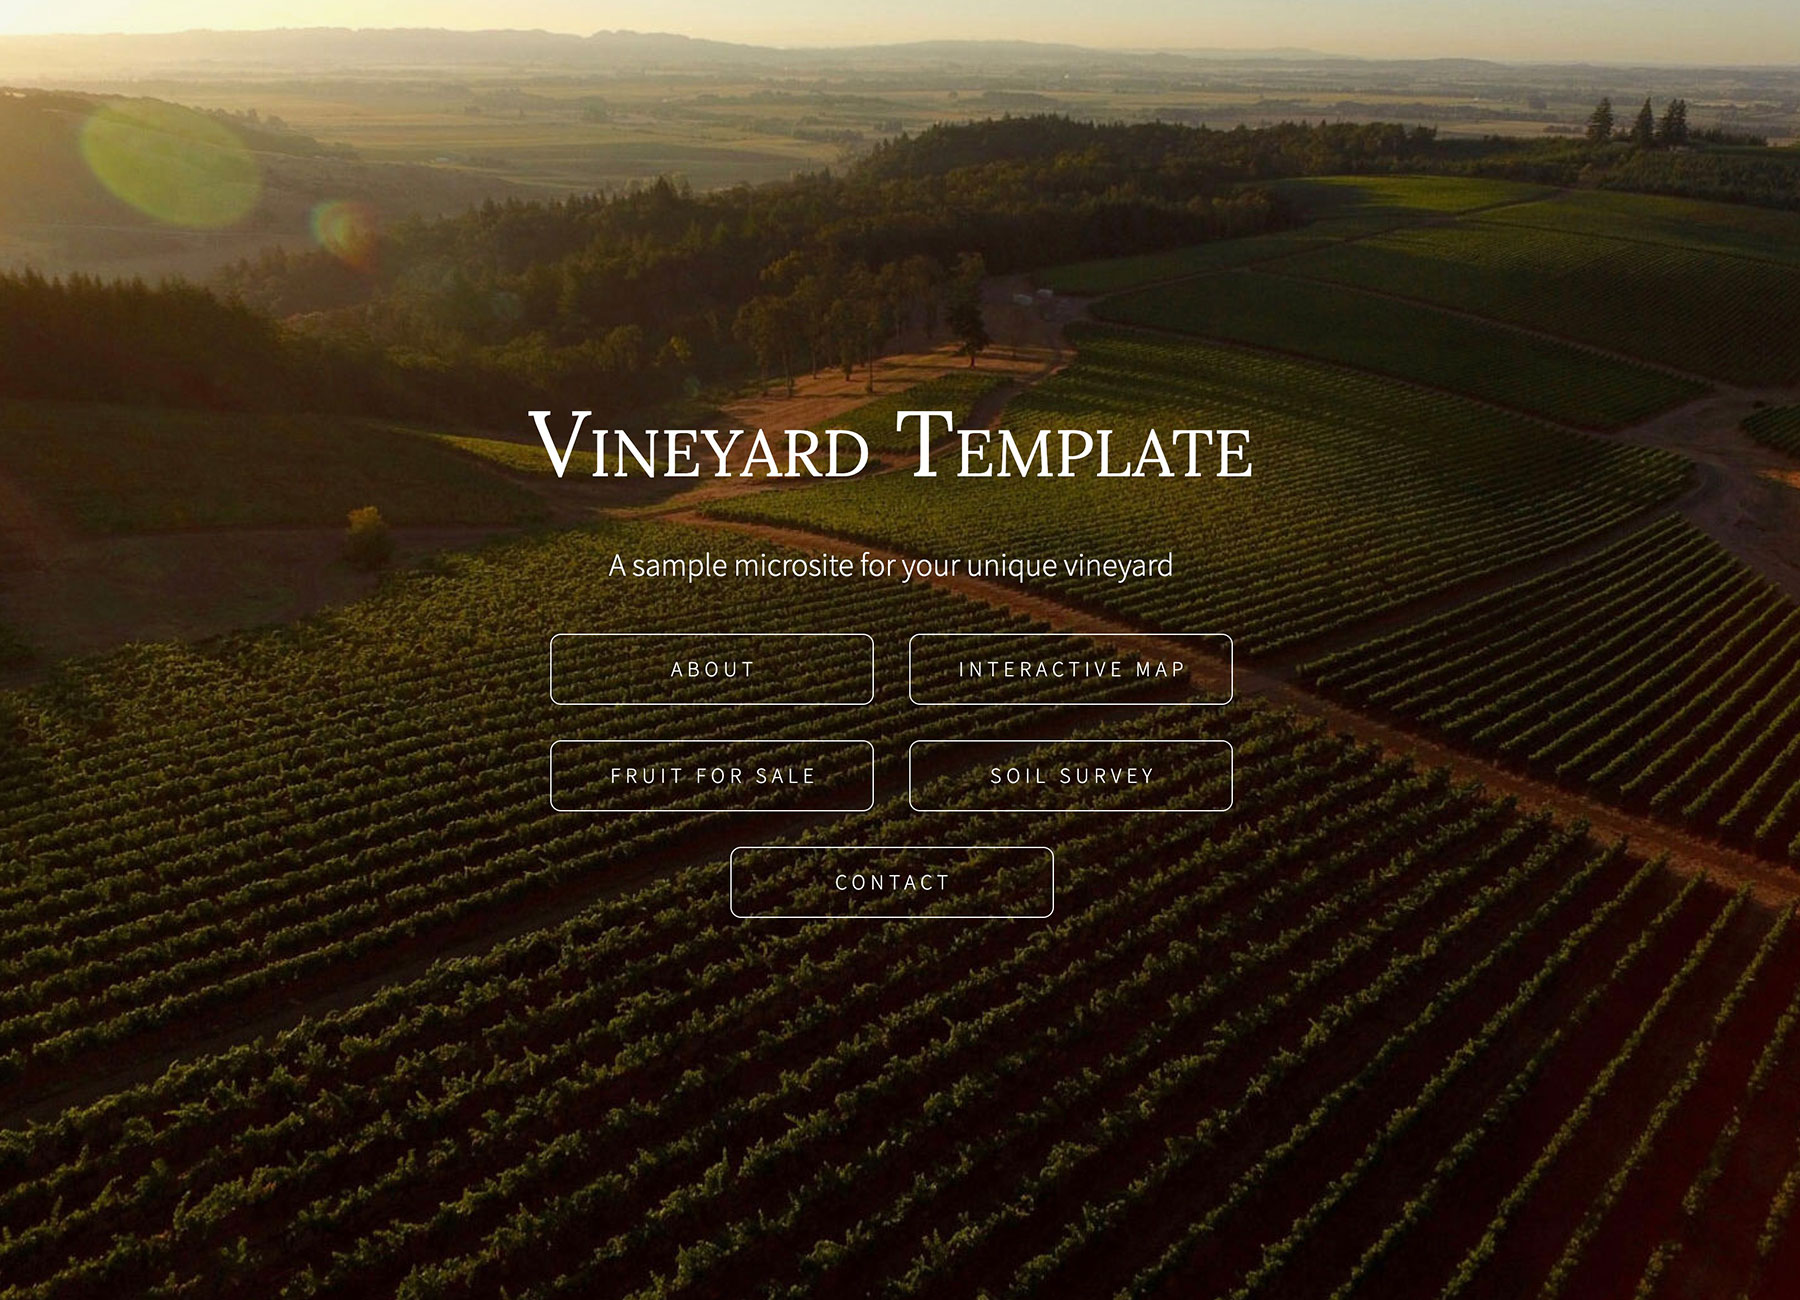 Template example of a vineyard microsite